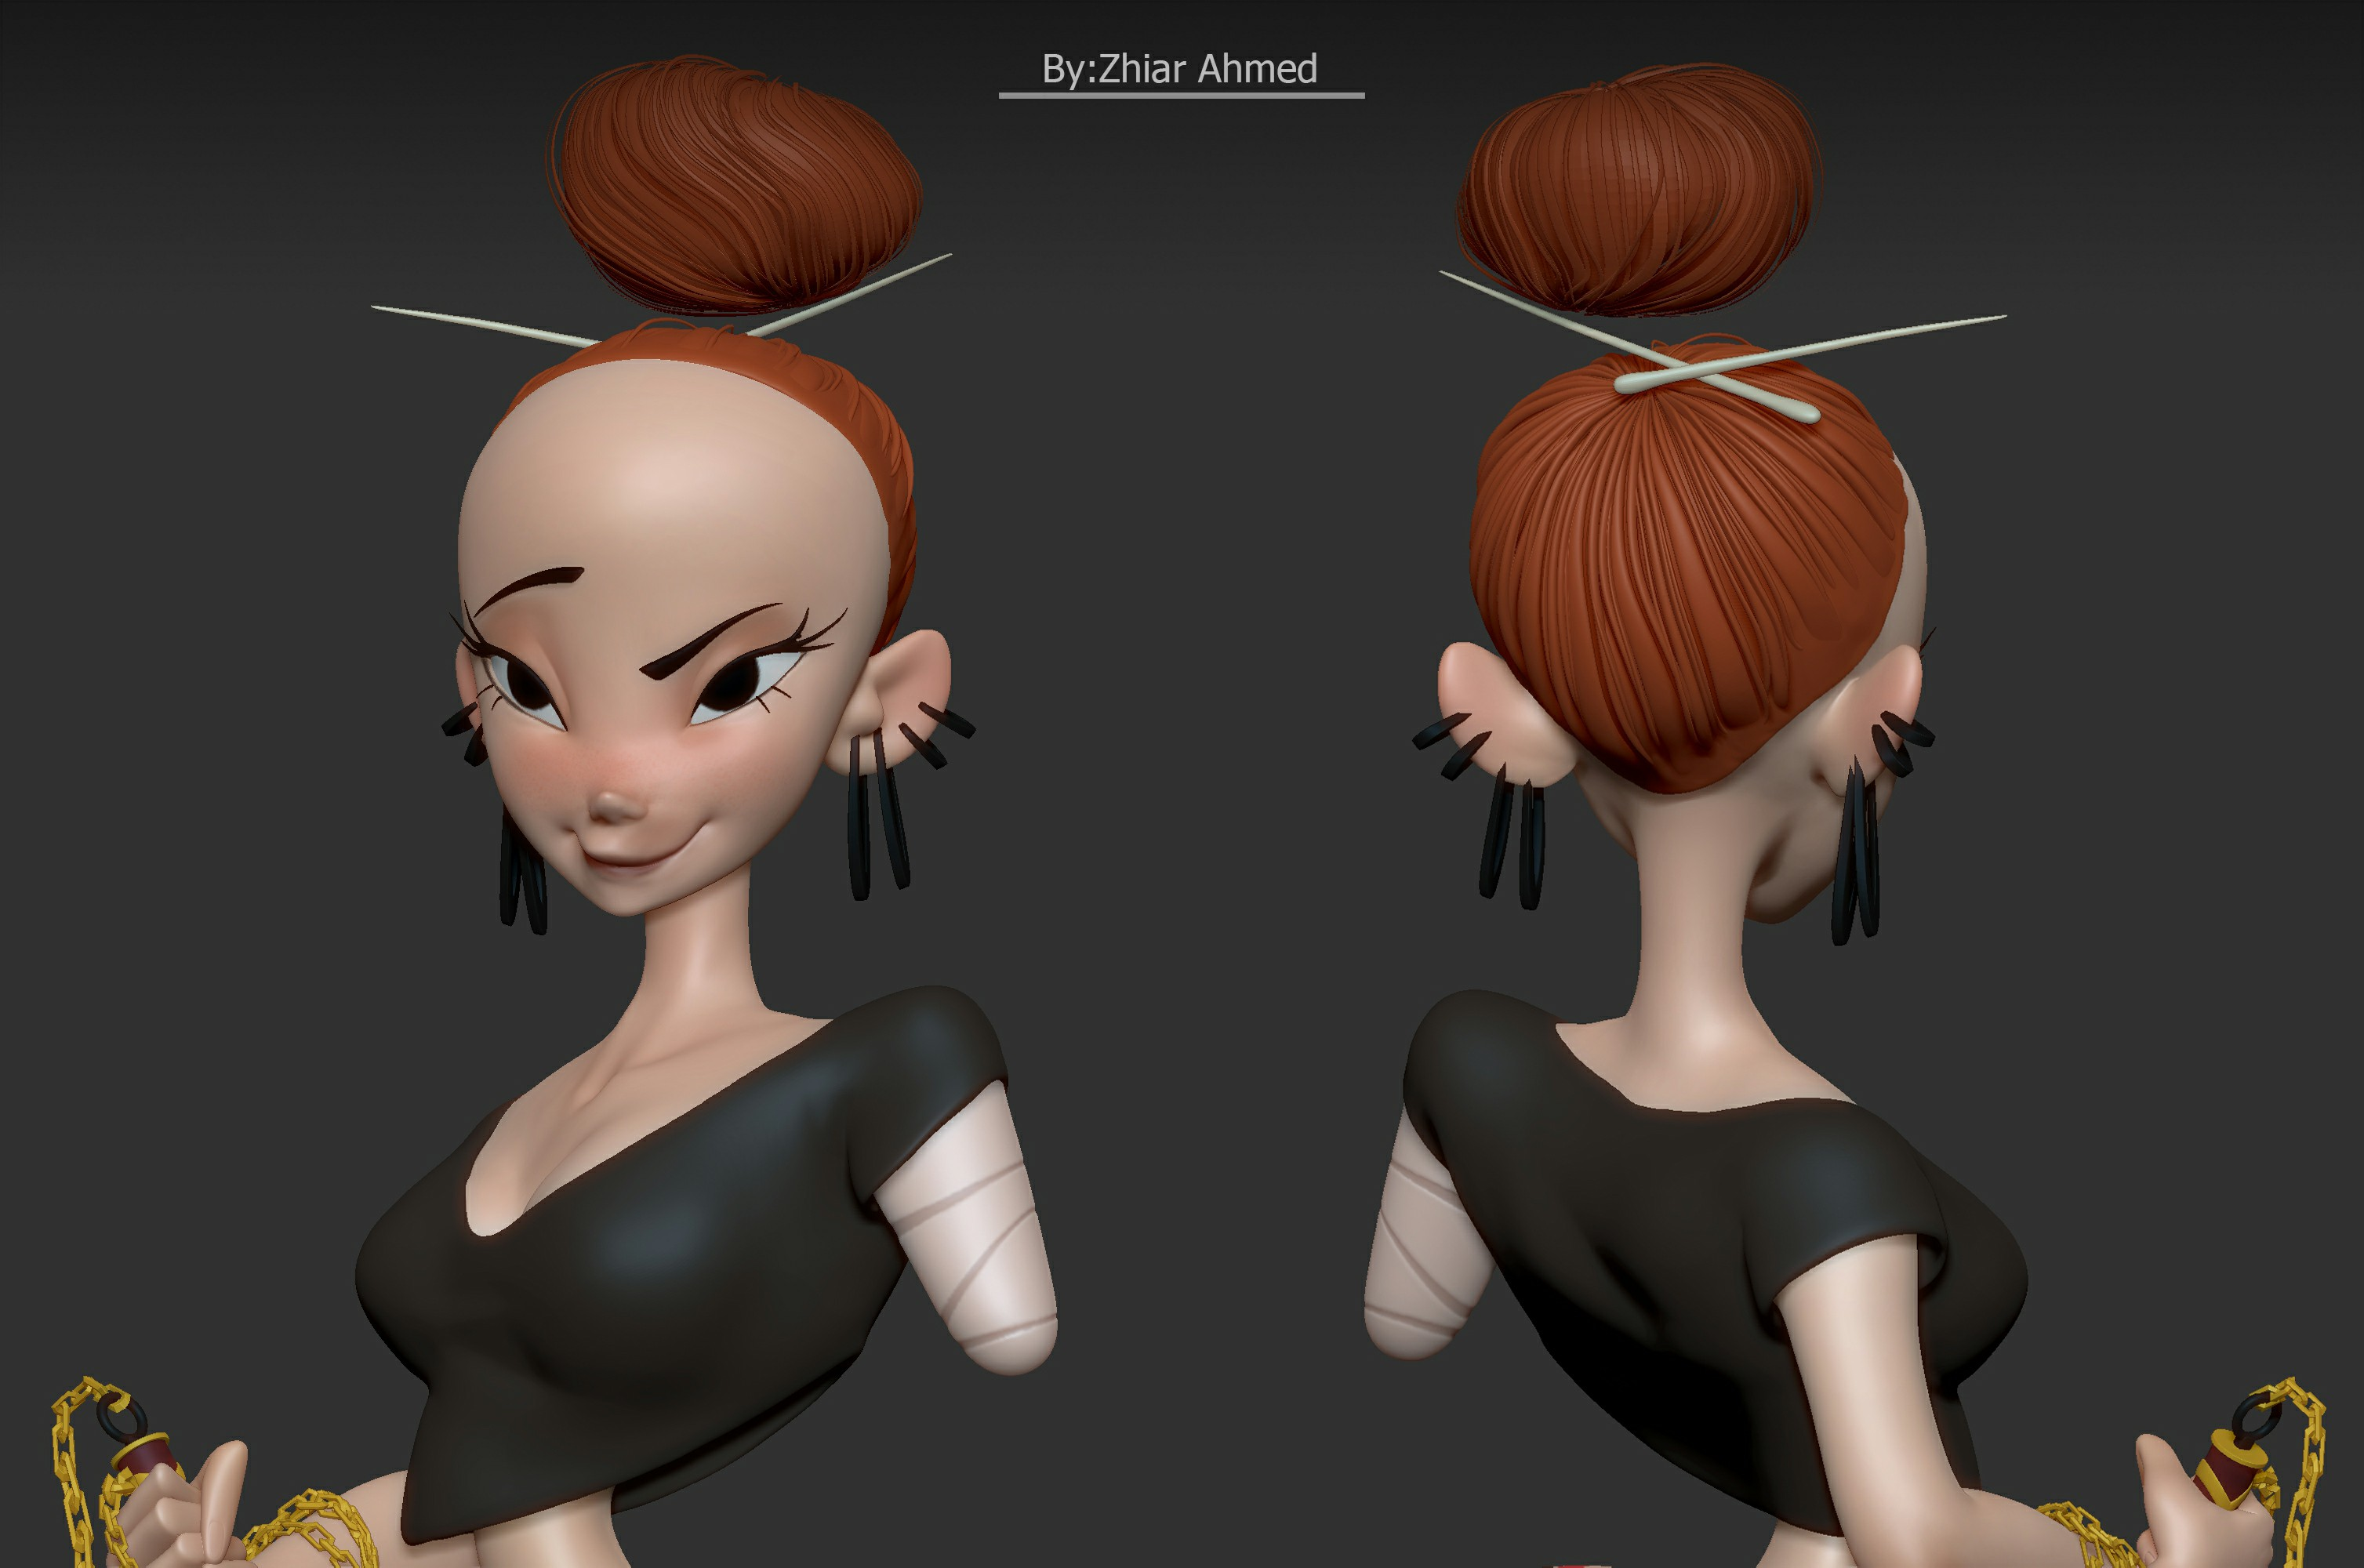 Kana zbrush screenshot-3.jpg